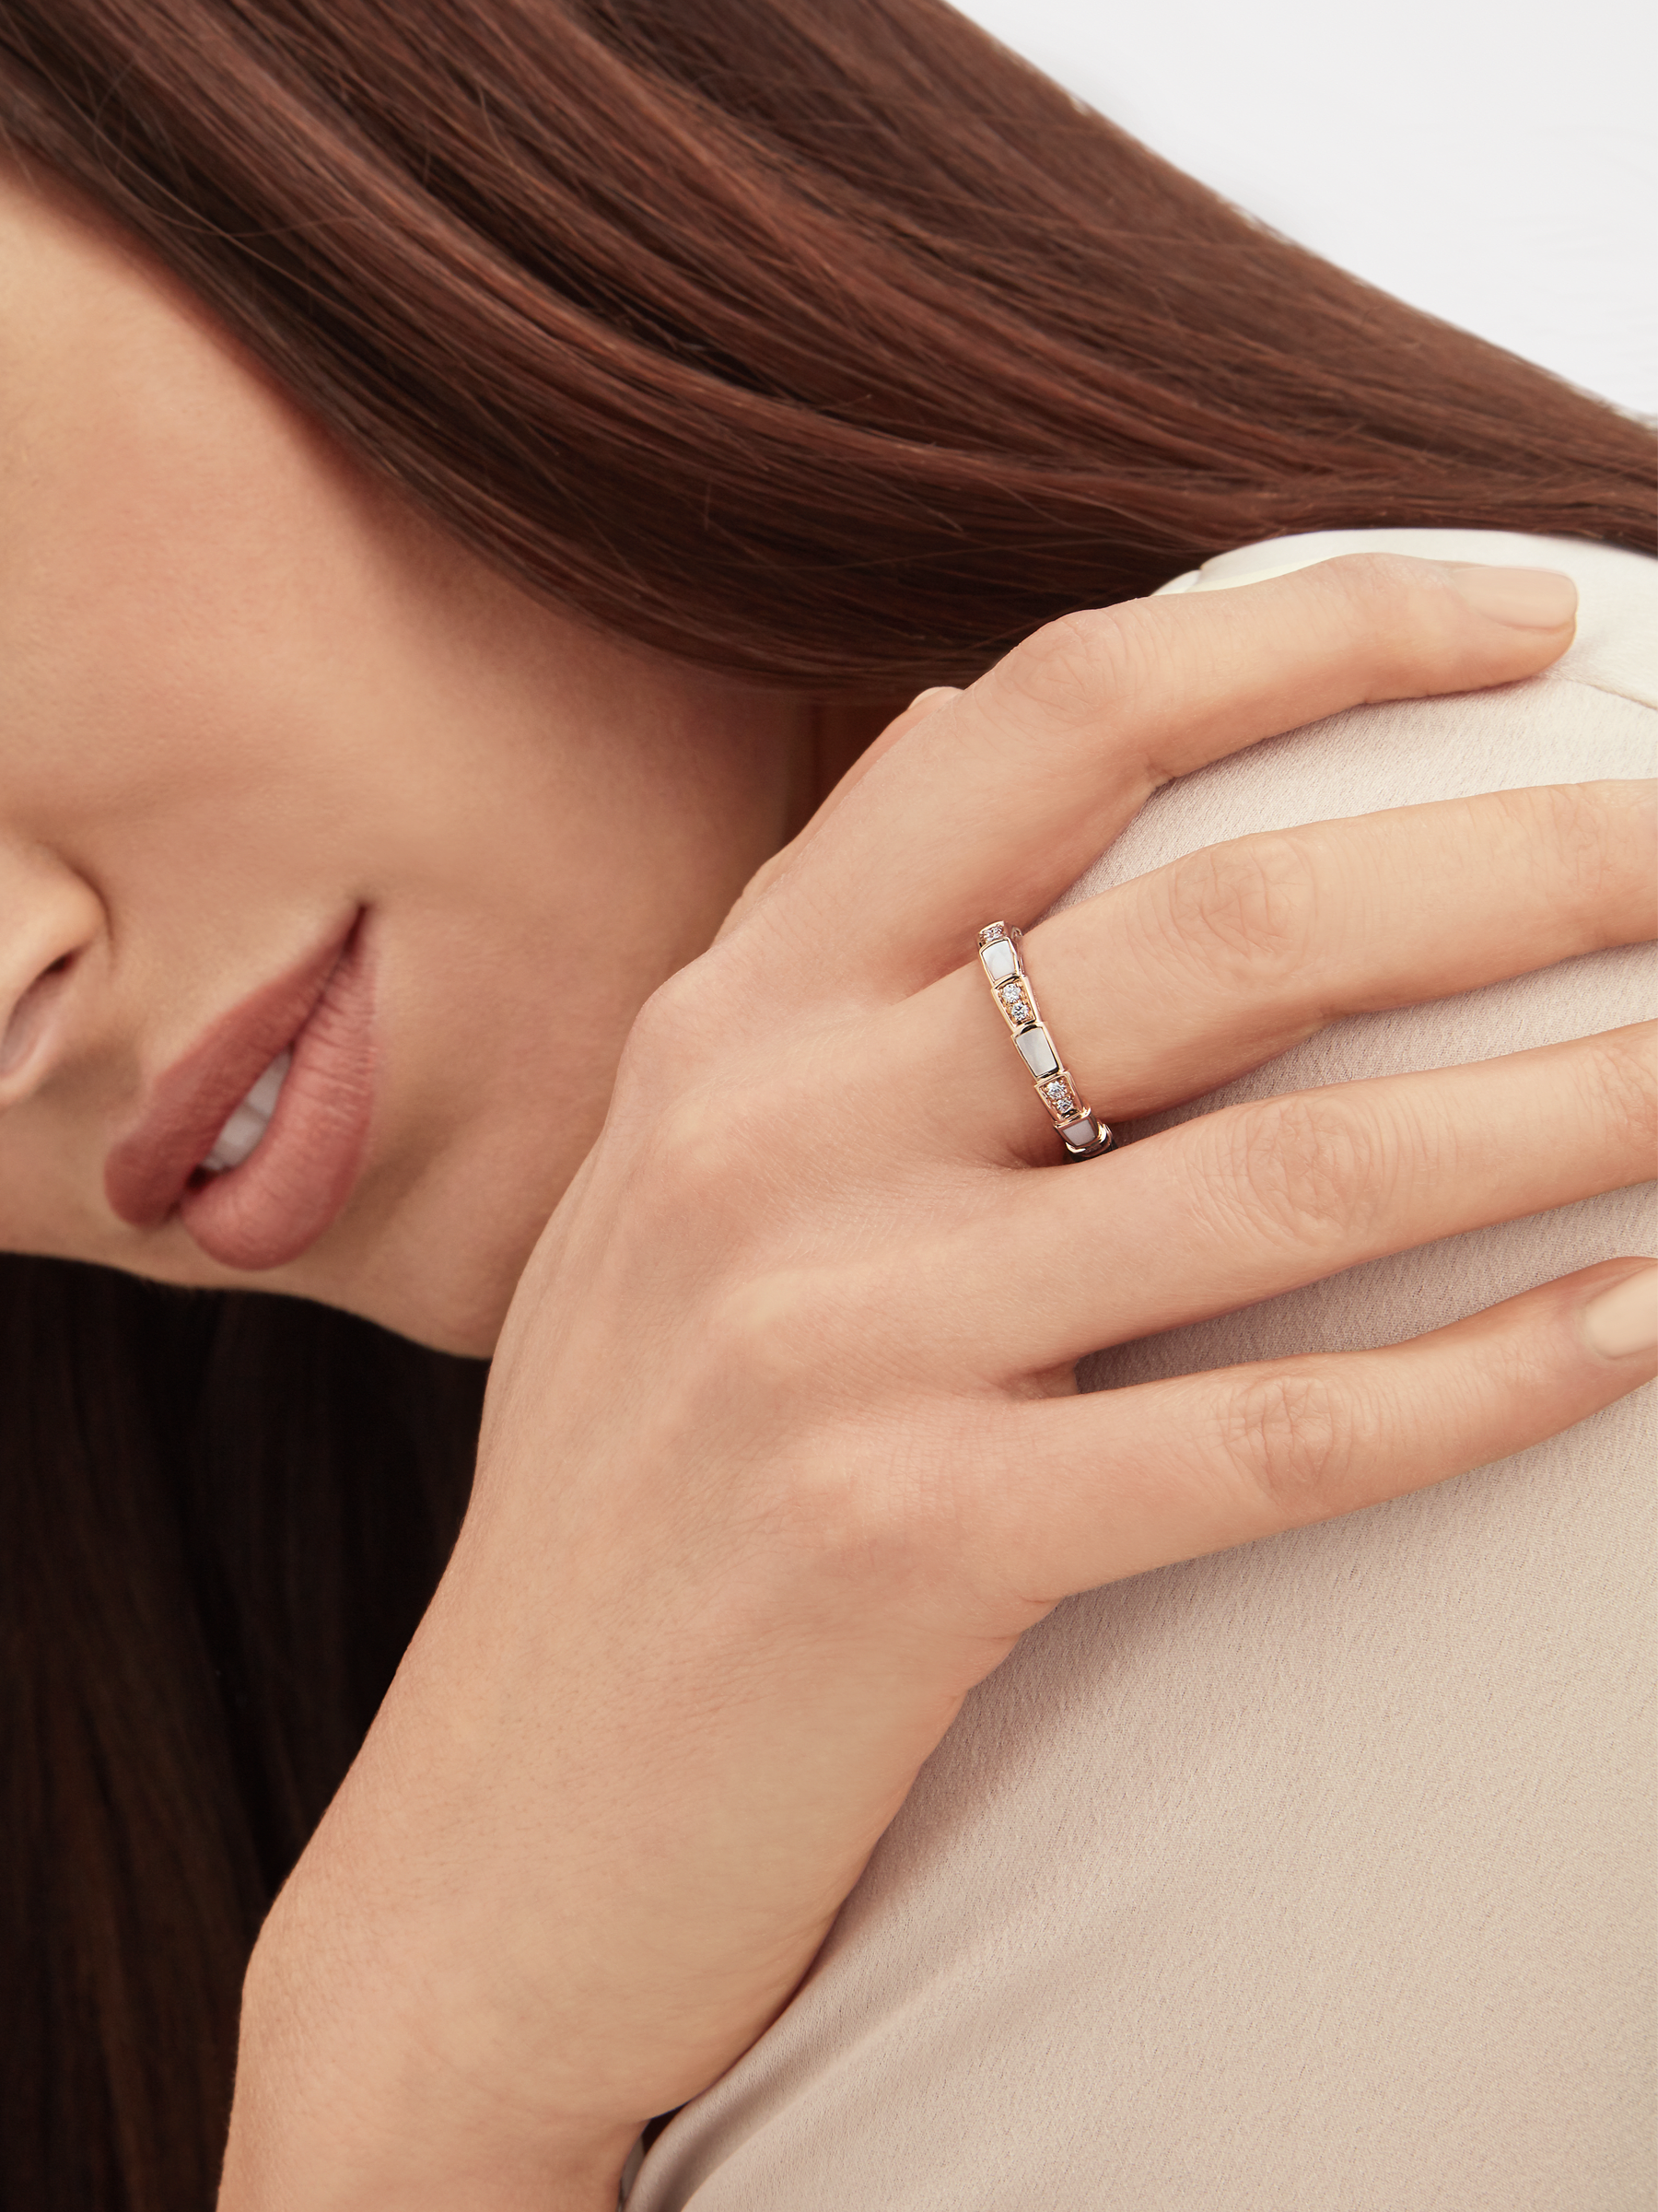 Serpenti Viper band ring in 18 kt rose gold, set with mother of pearl elements and pavé diamonds. AN858042 image 3